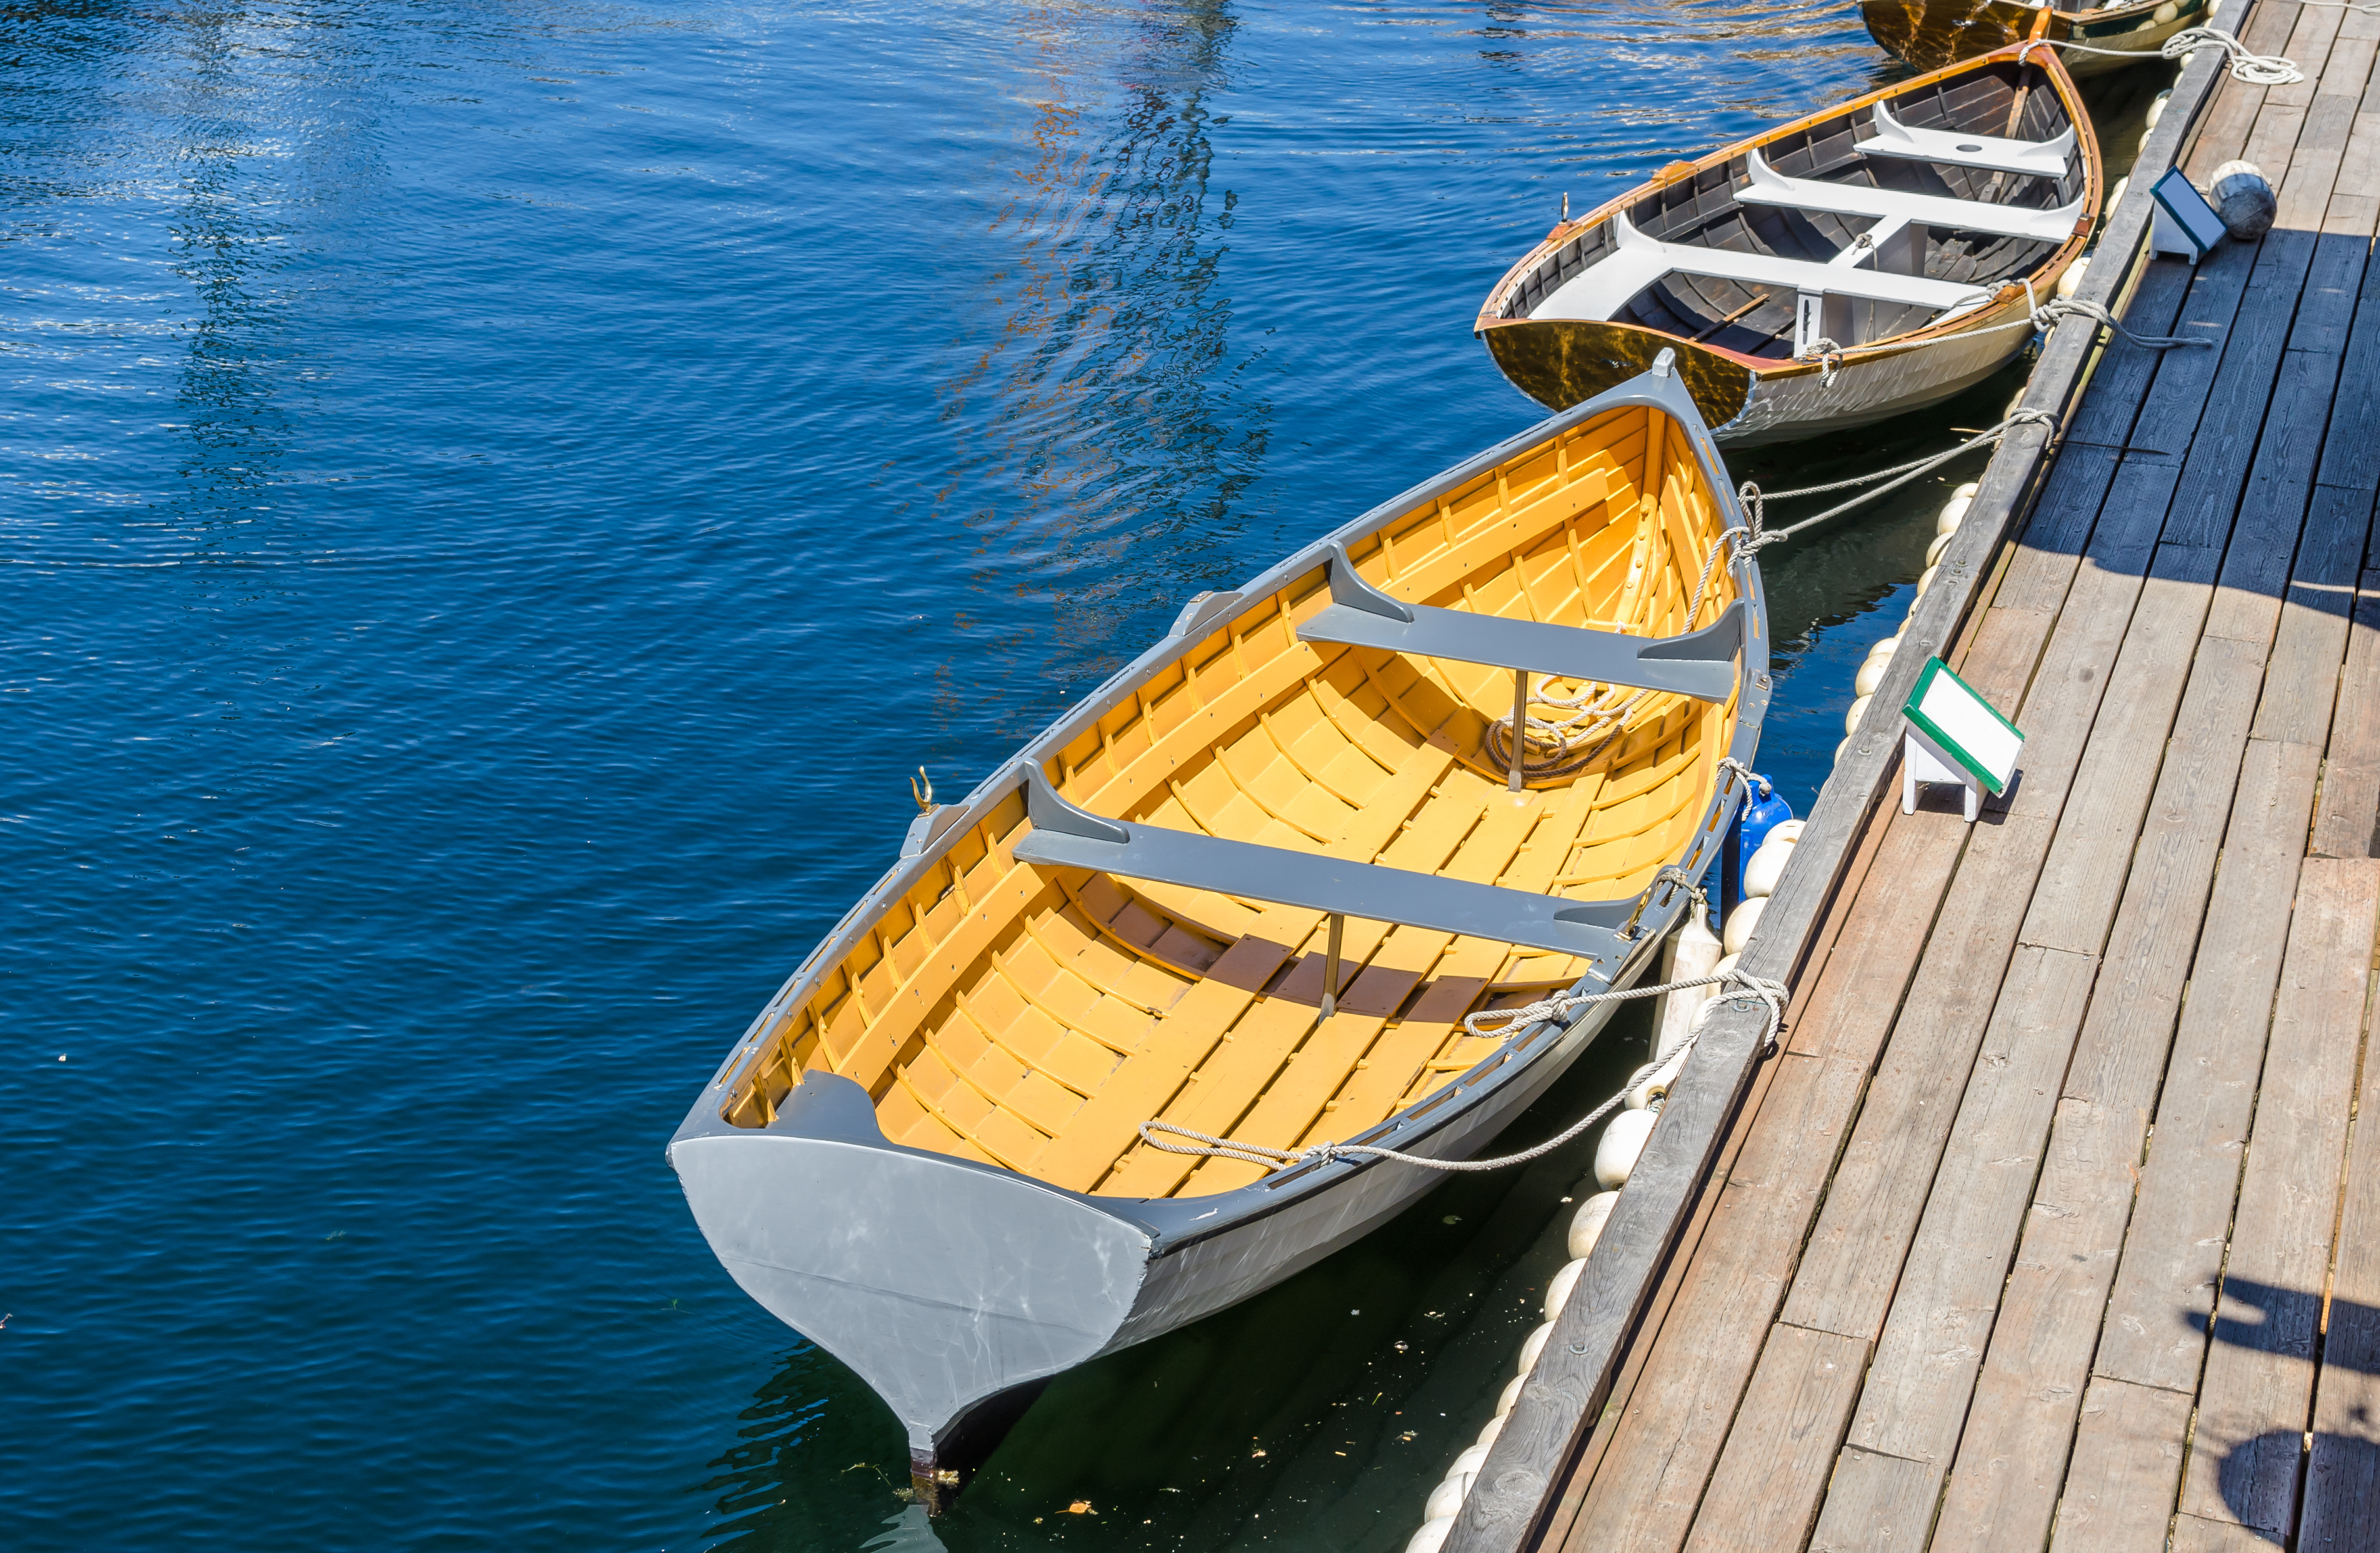 Two boats on a body of water next to a wooden pier. The boat in the foreground has a yellow interior.